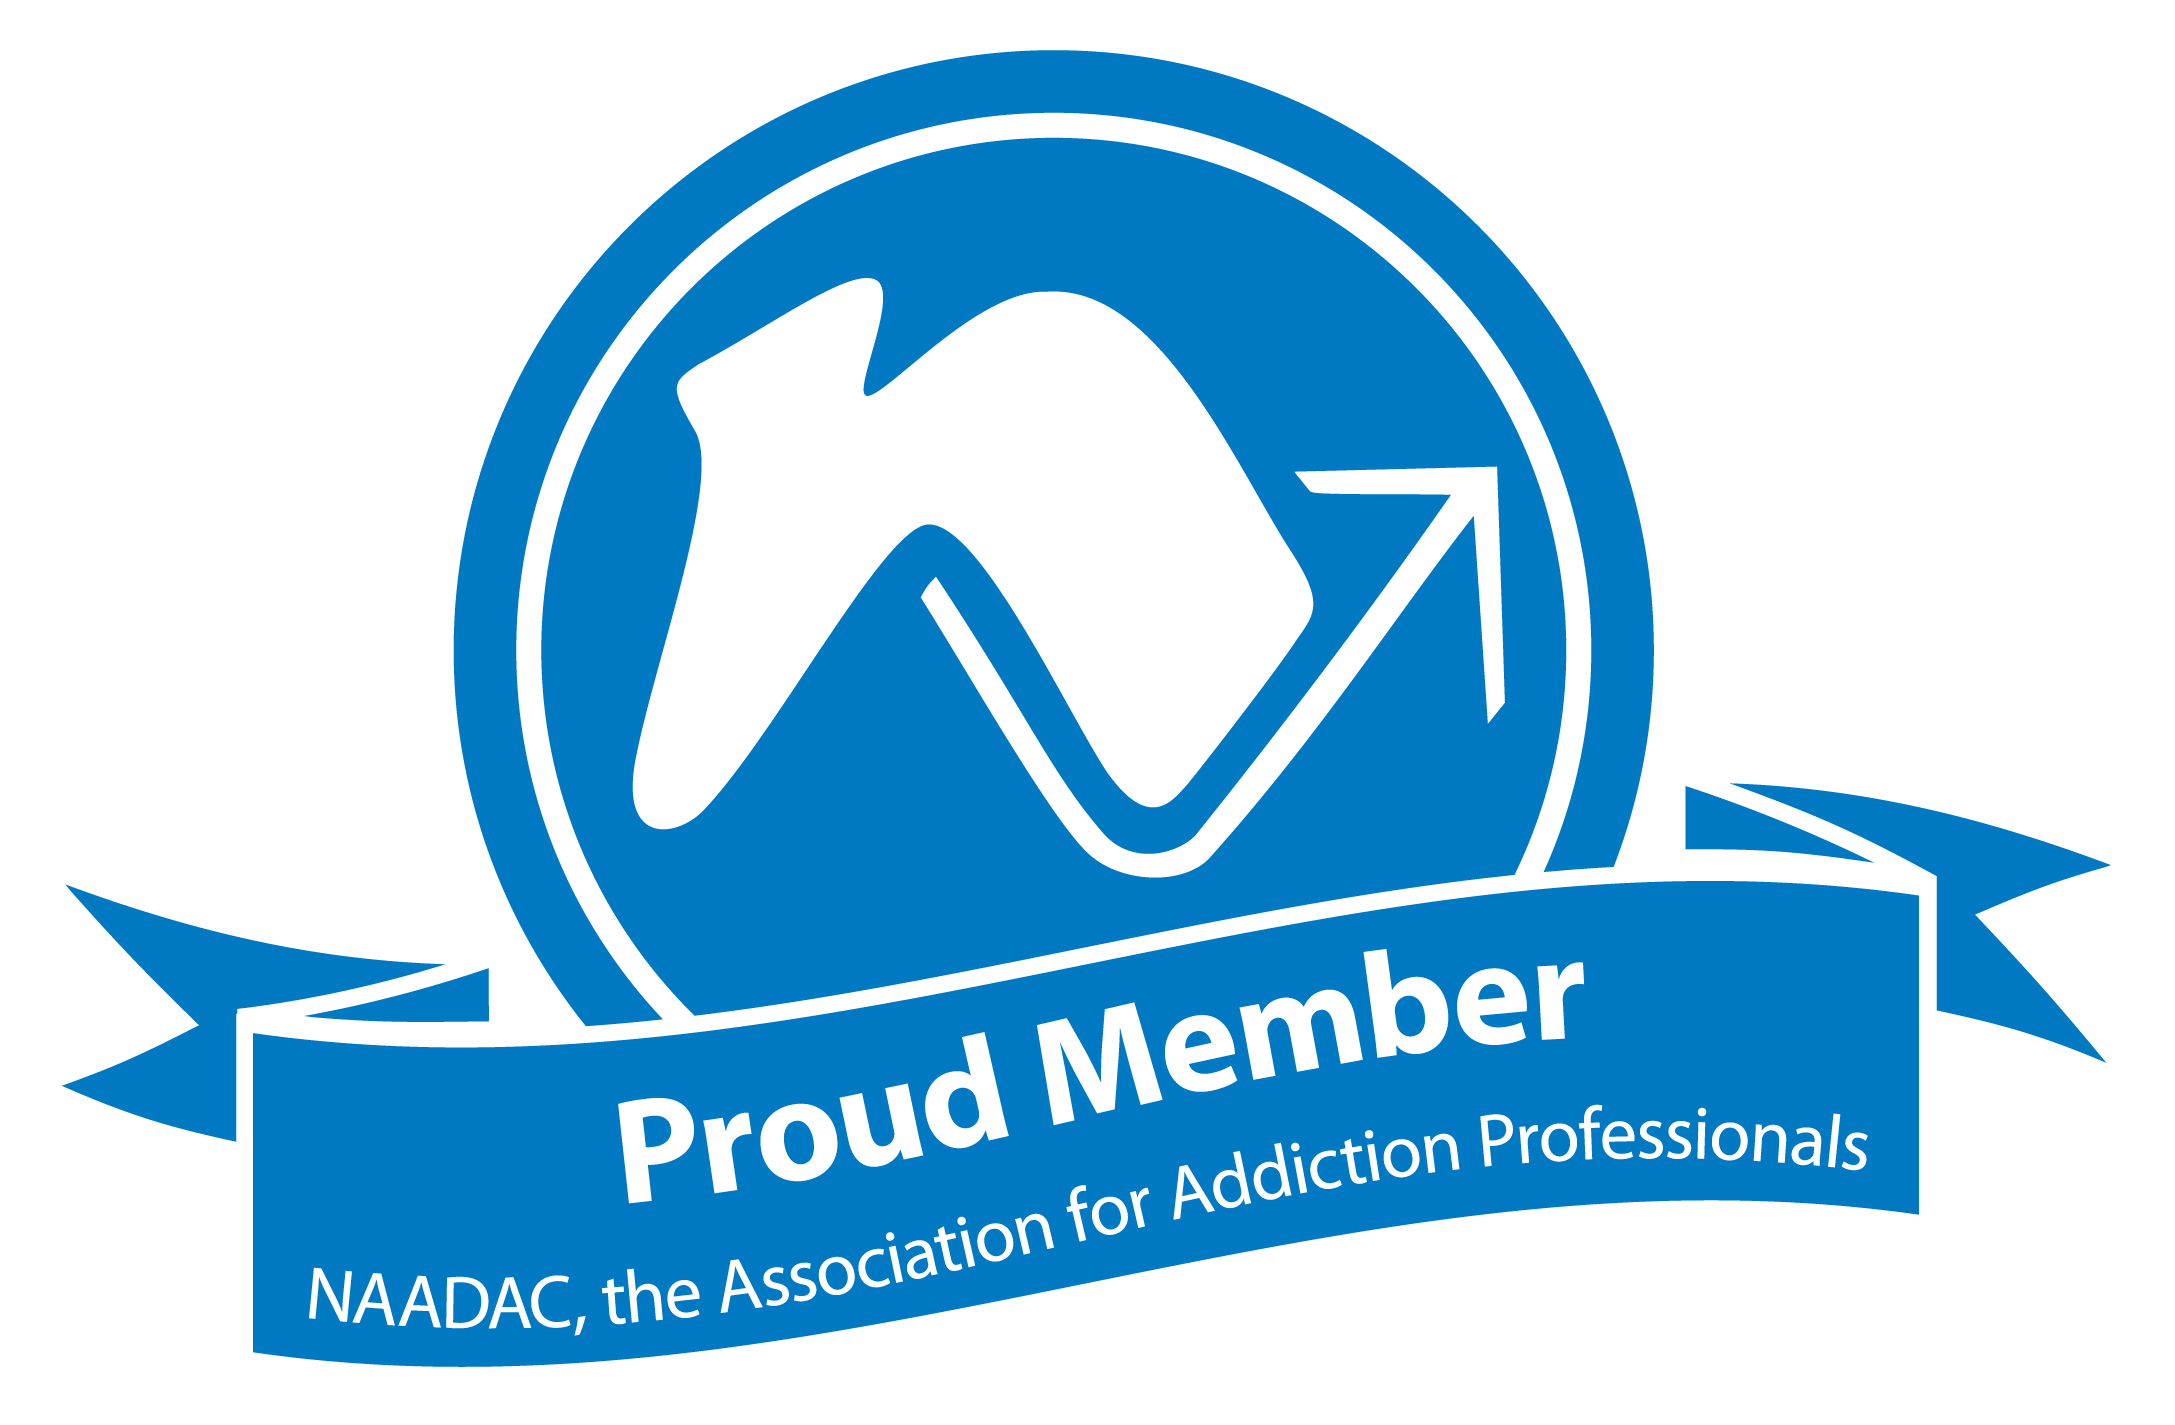 The Association for Addiction Professionals